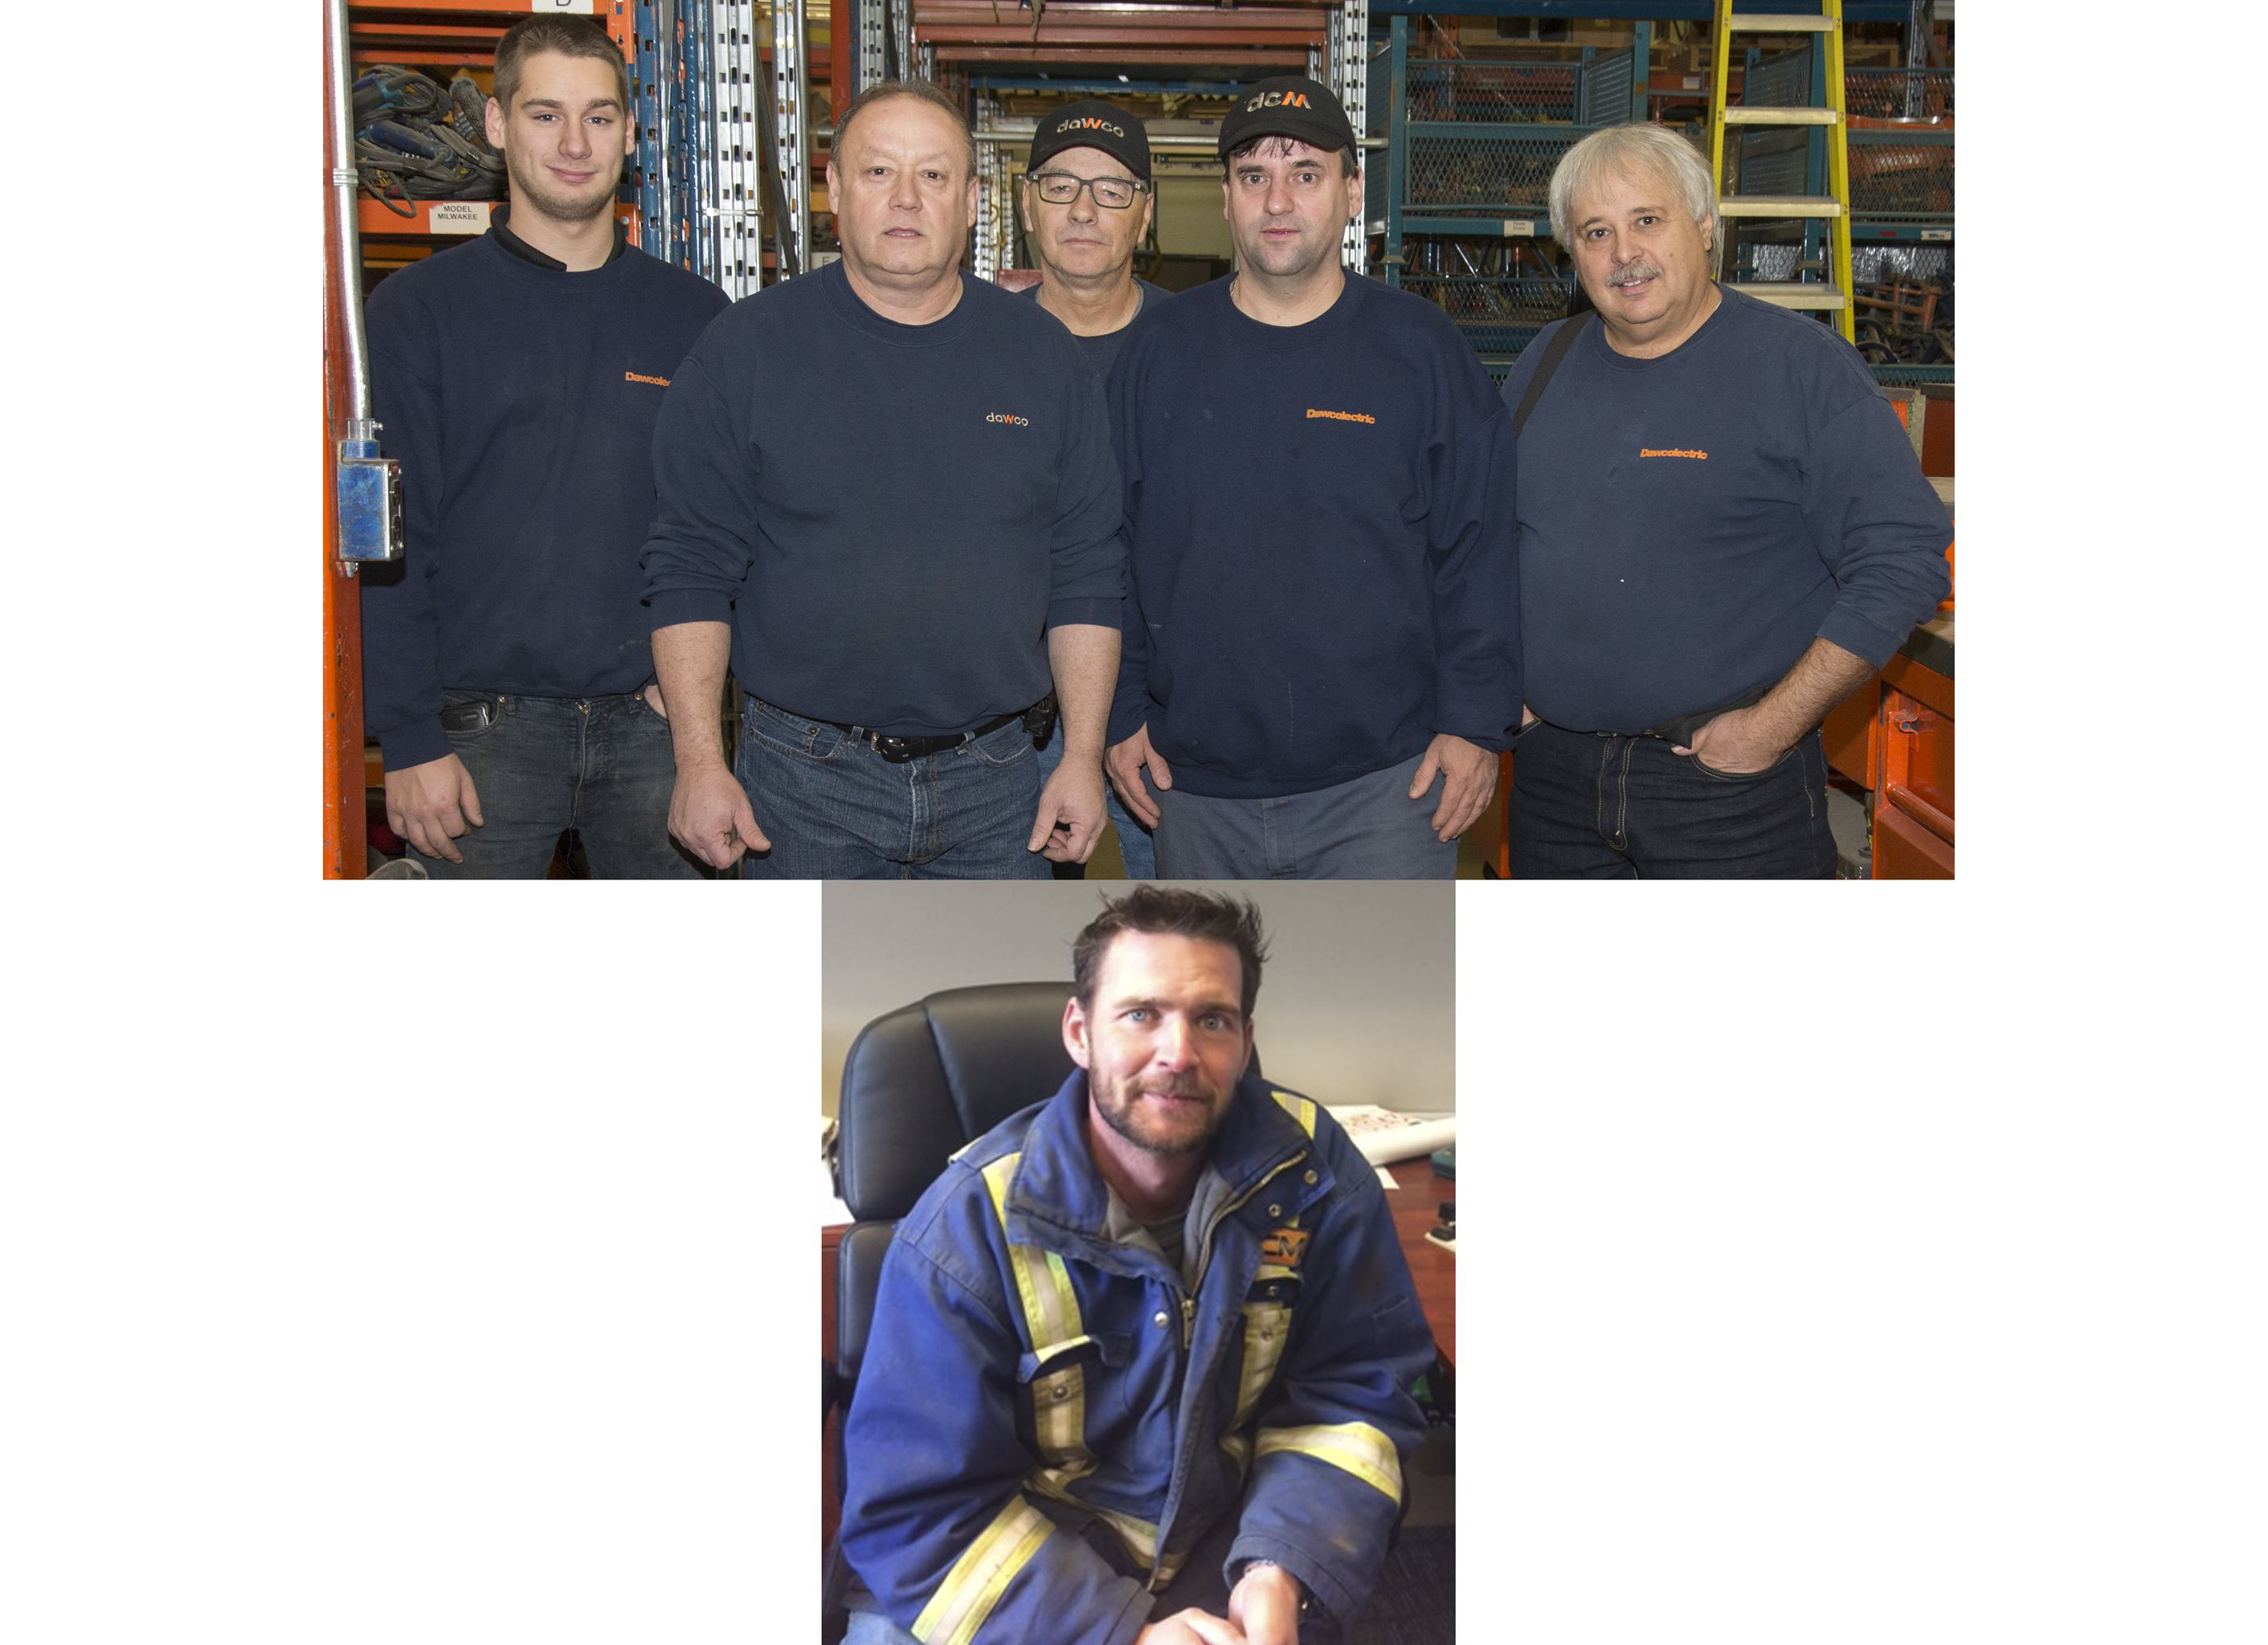 Recognizing the important role warehouse employees play